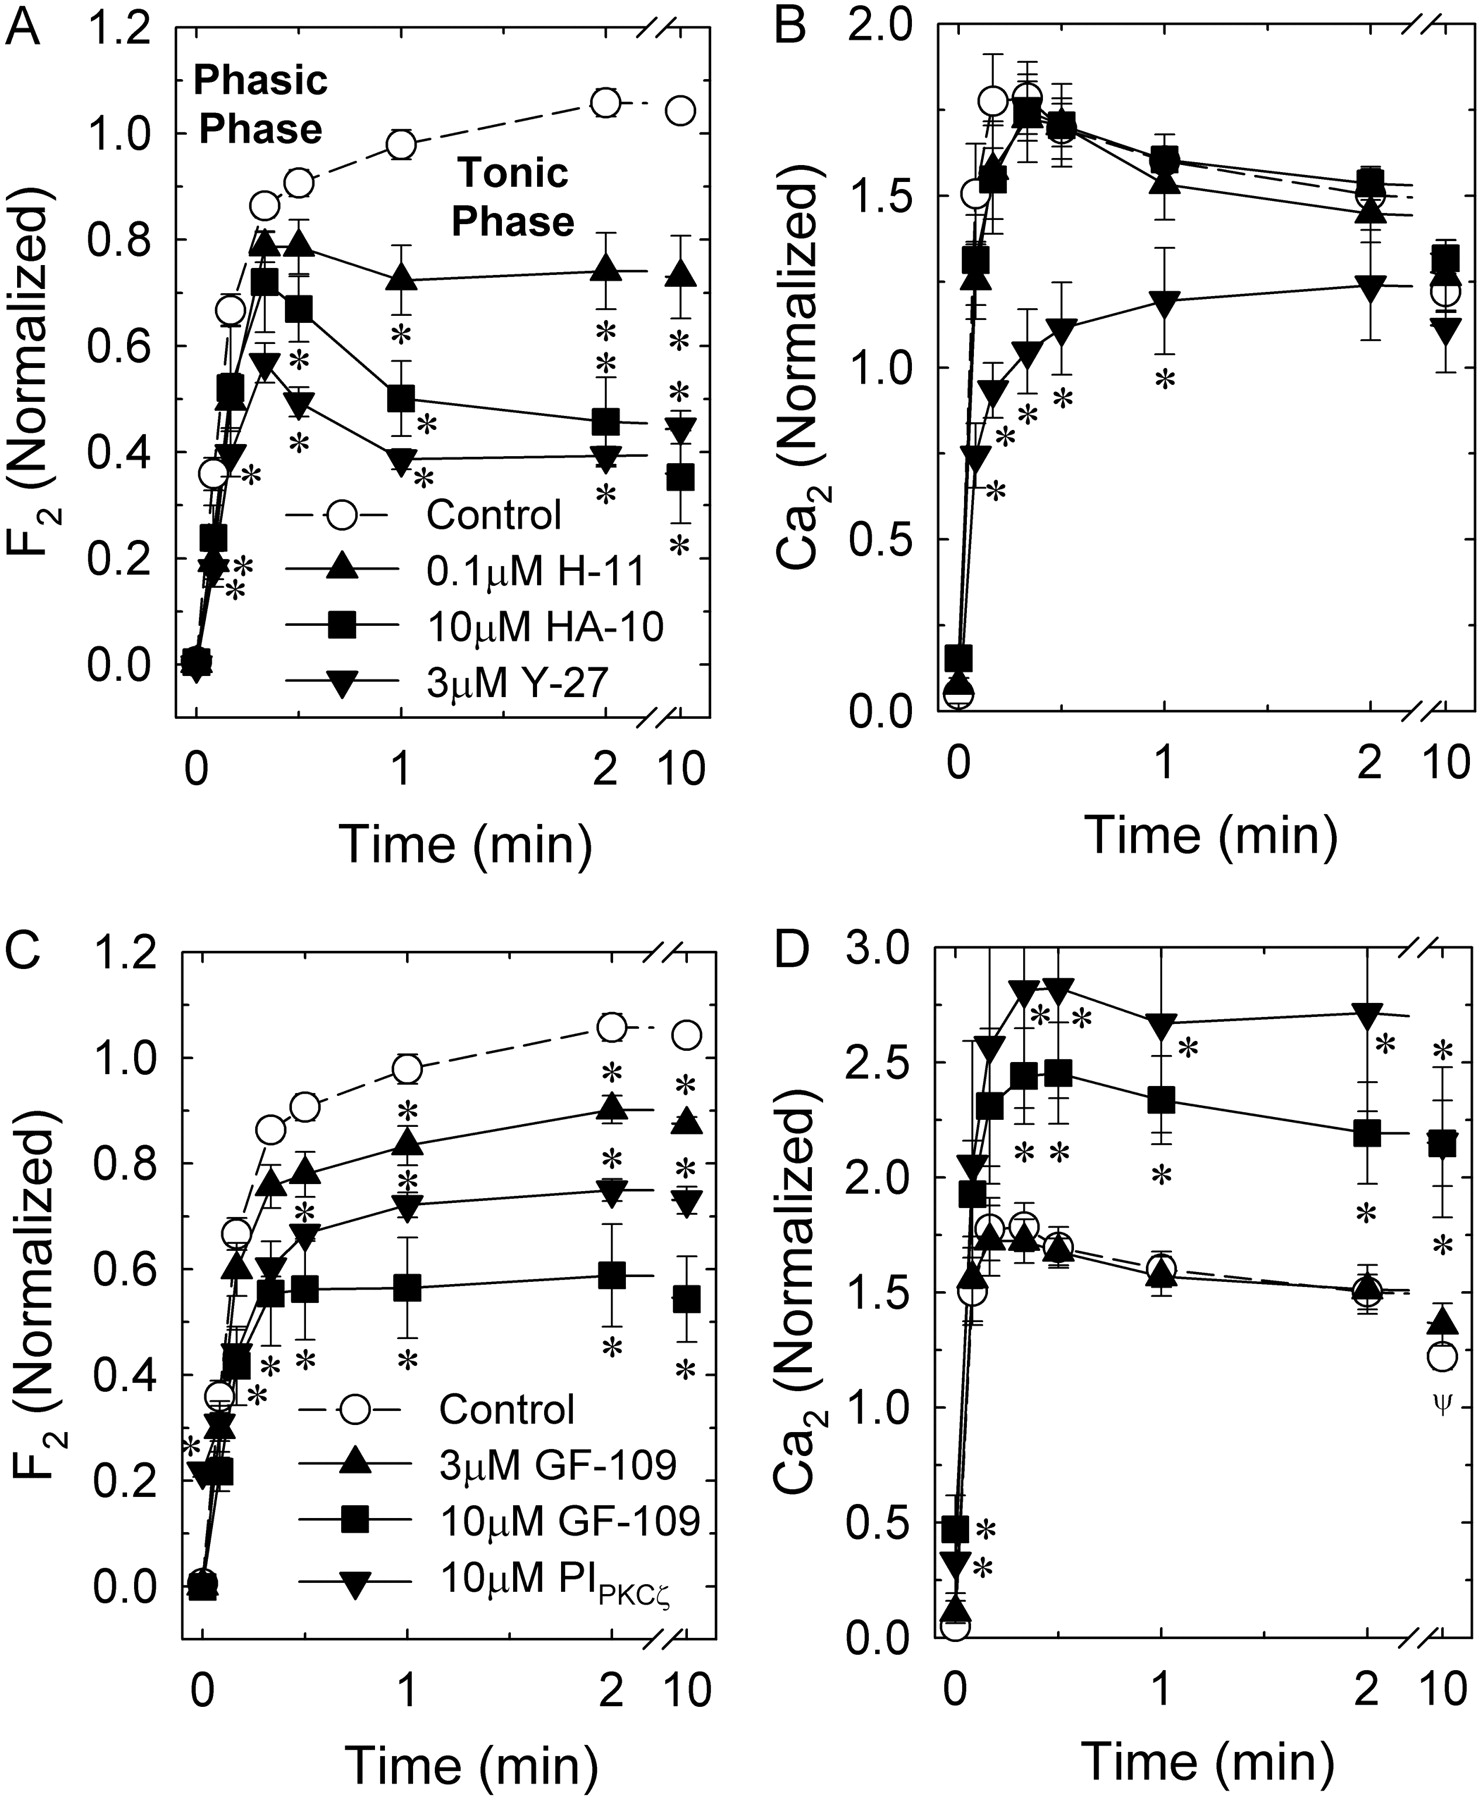 Role of Protein Kinase Cζ and Calcium Entry in KCl-Induced